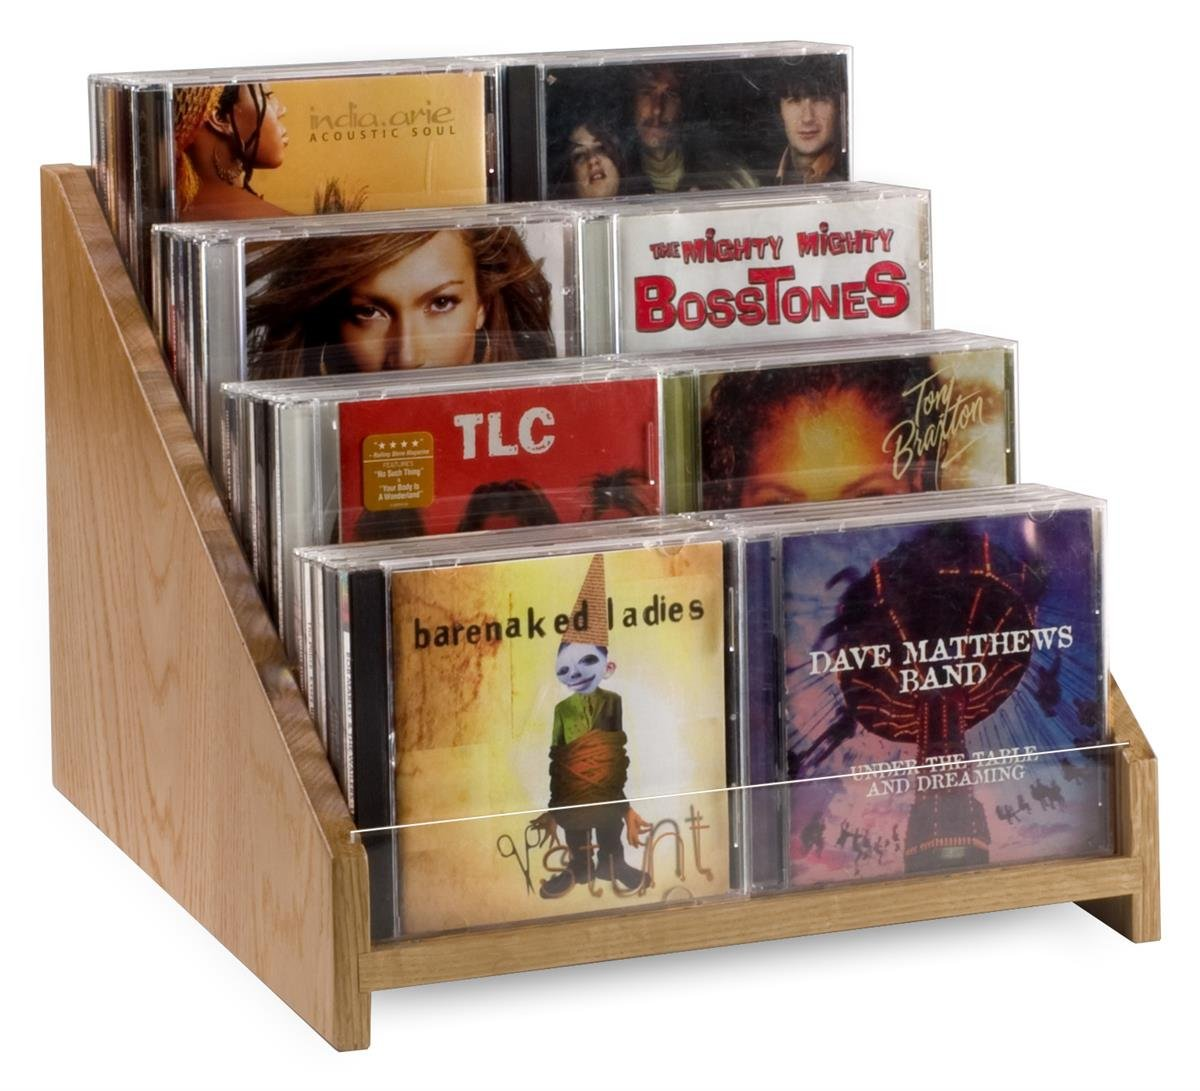 Wood CD/DVD Rack for Tabletop Use, Holds 40 CDs or 24 DVDs, Tiered Design